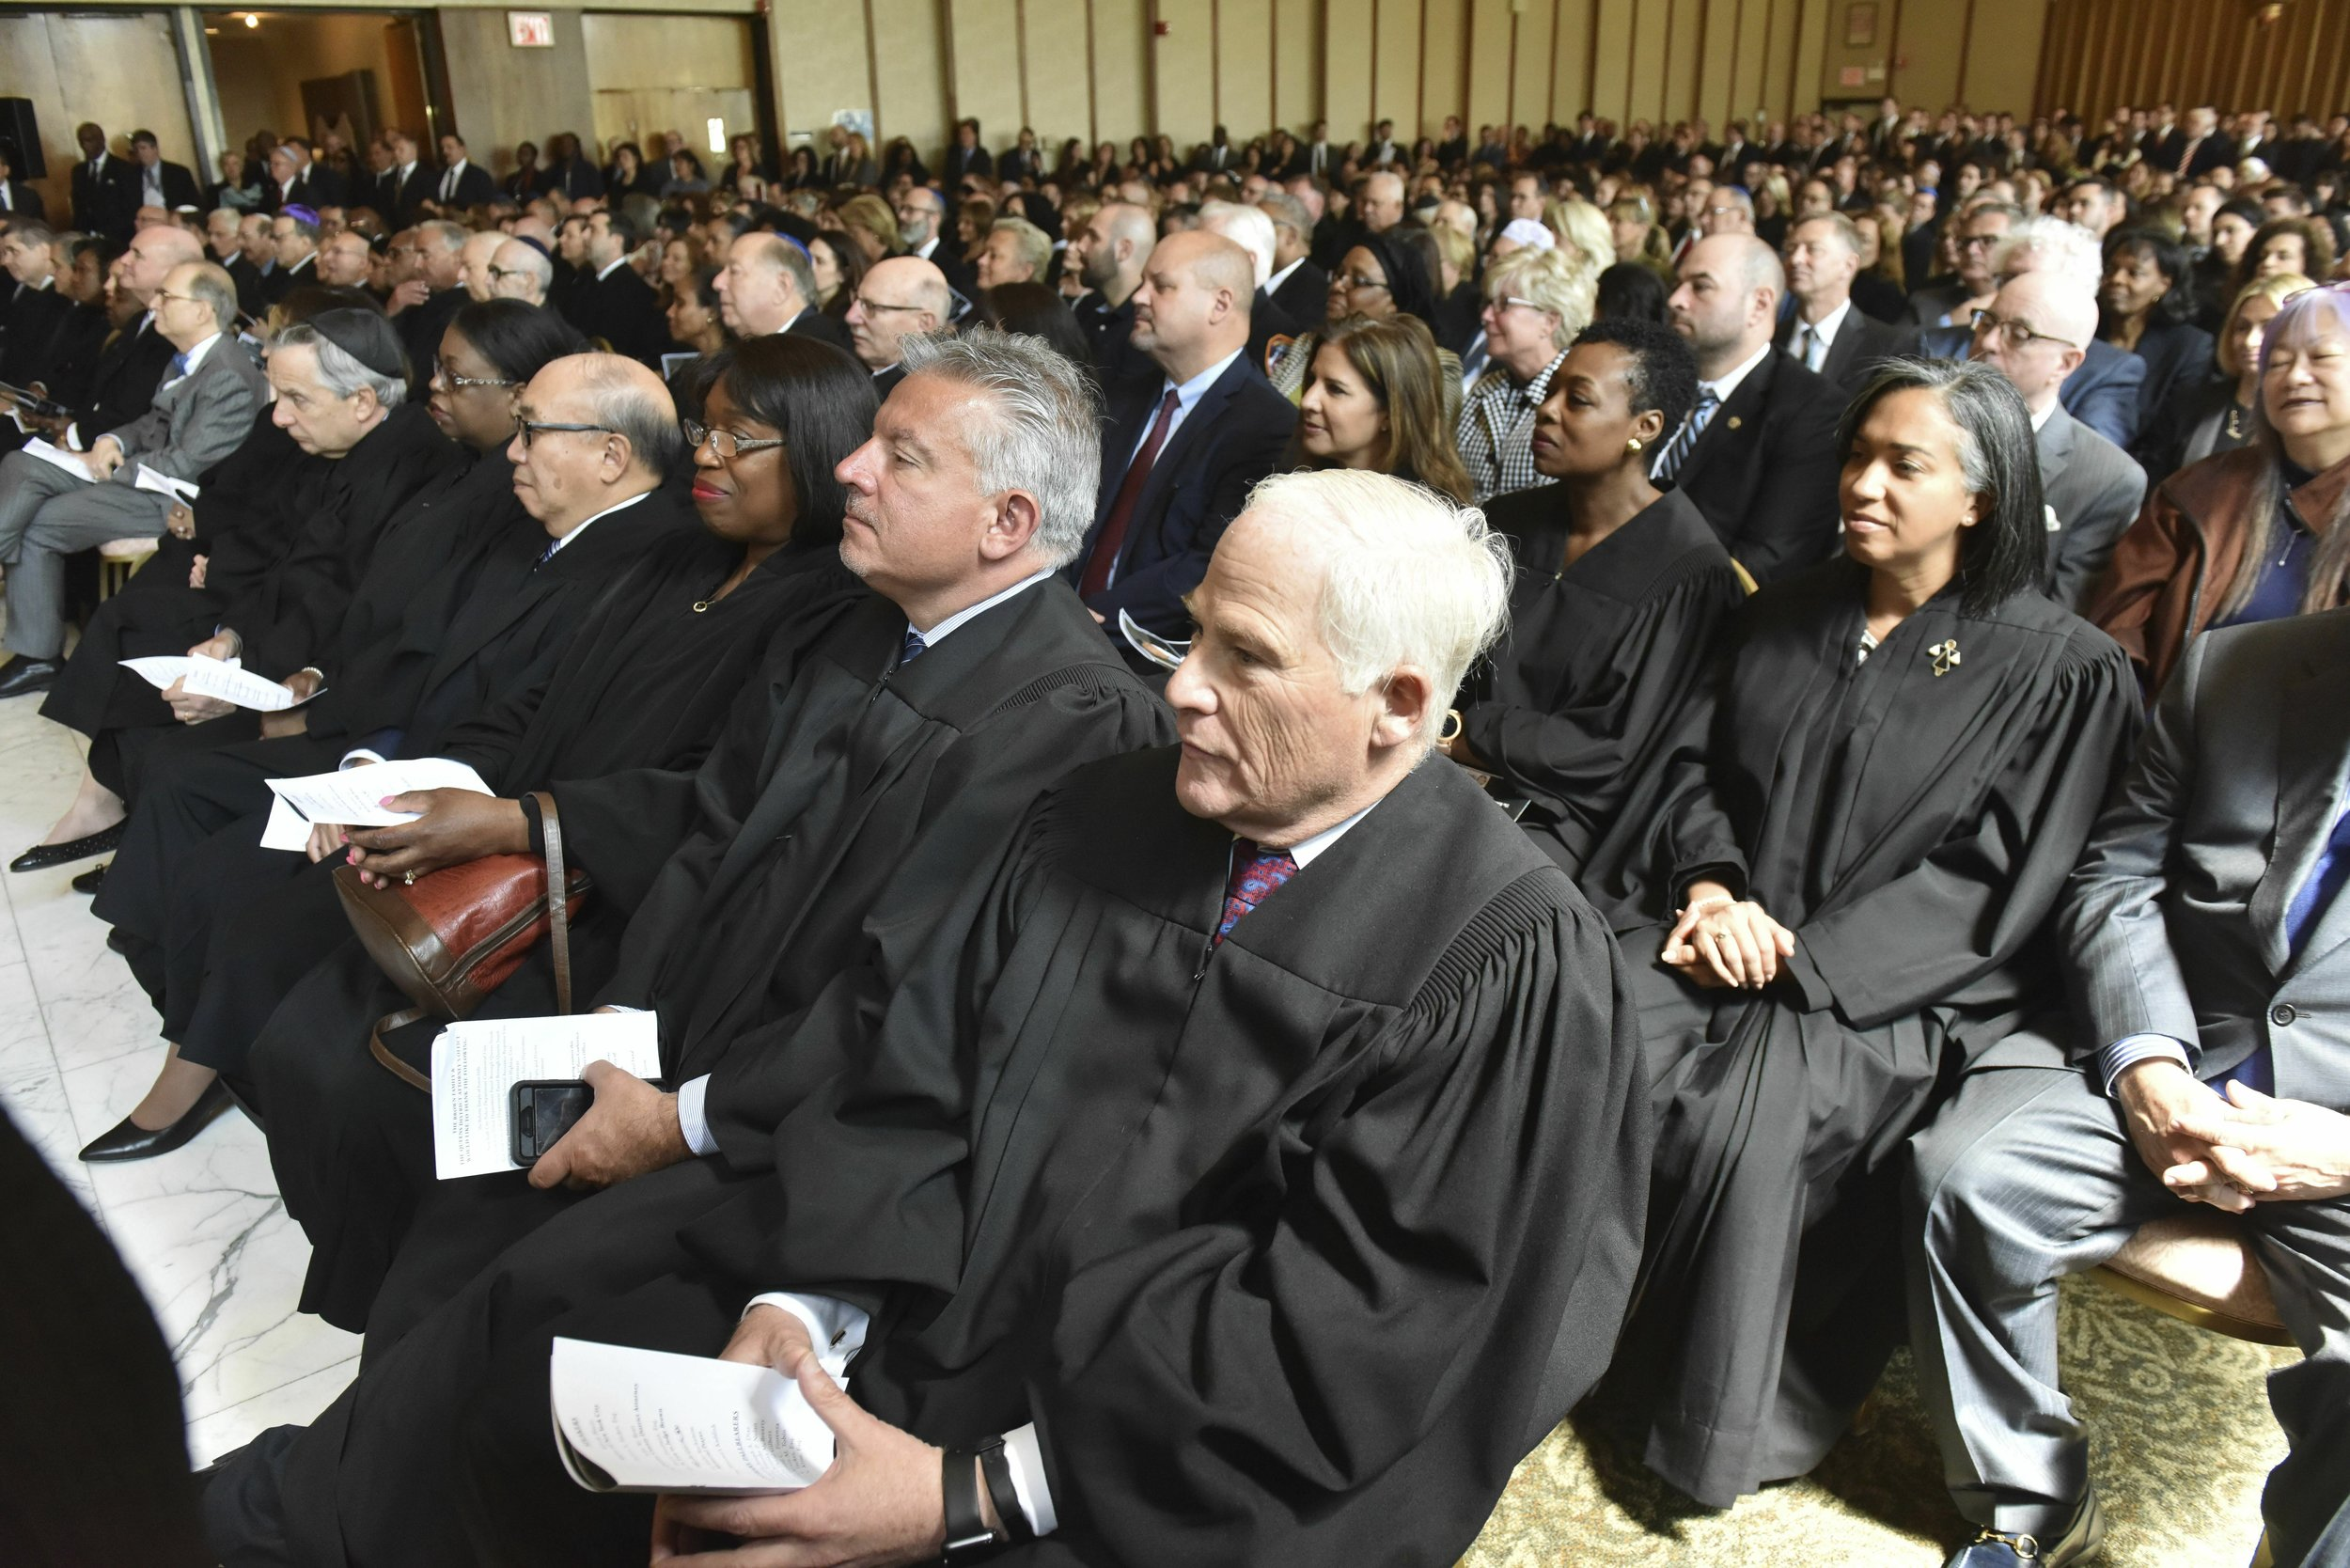 Dozens of judges attend a memorial service for former Queens District Attorney Richard A. Brown at the Reform Temple of Forest Hills on Tuesday. David Handschu/New York Law Journal via AP, Pool